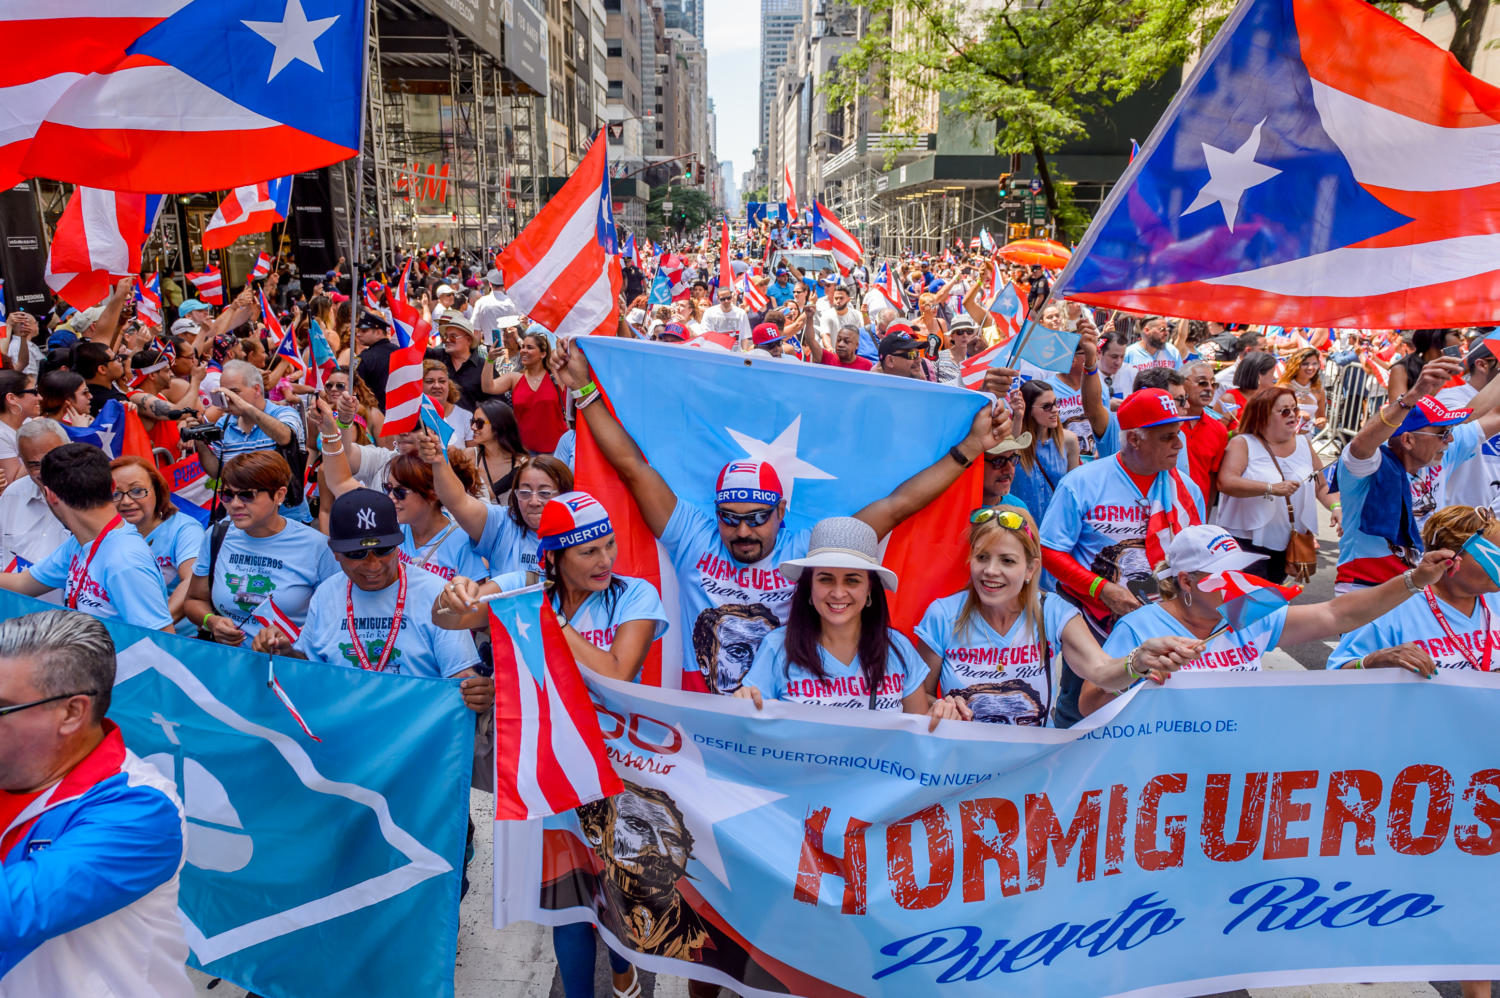 The National Puerto Rican Day Parade on June 11, 2017 in New York. Puerto Rico is pressing its quest for statehood. (Erik McGregor/Sipa USA/TNS)